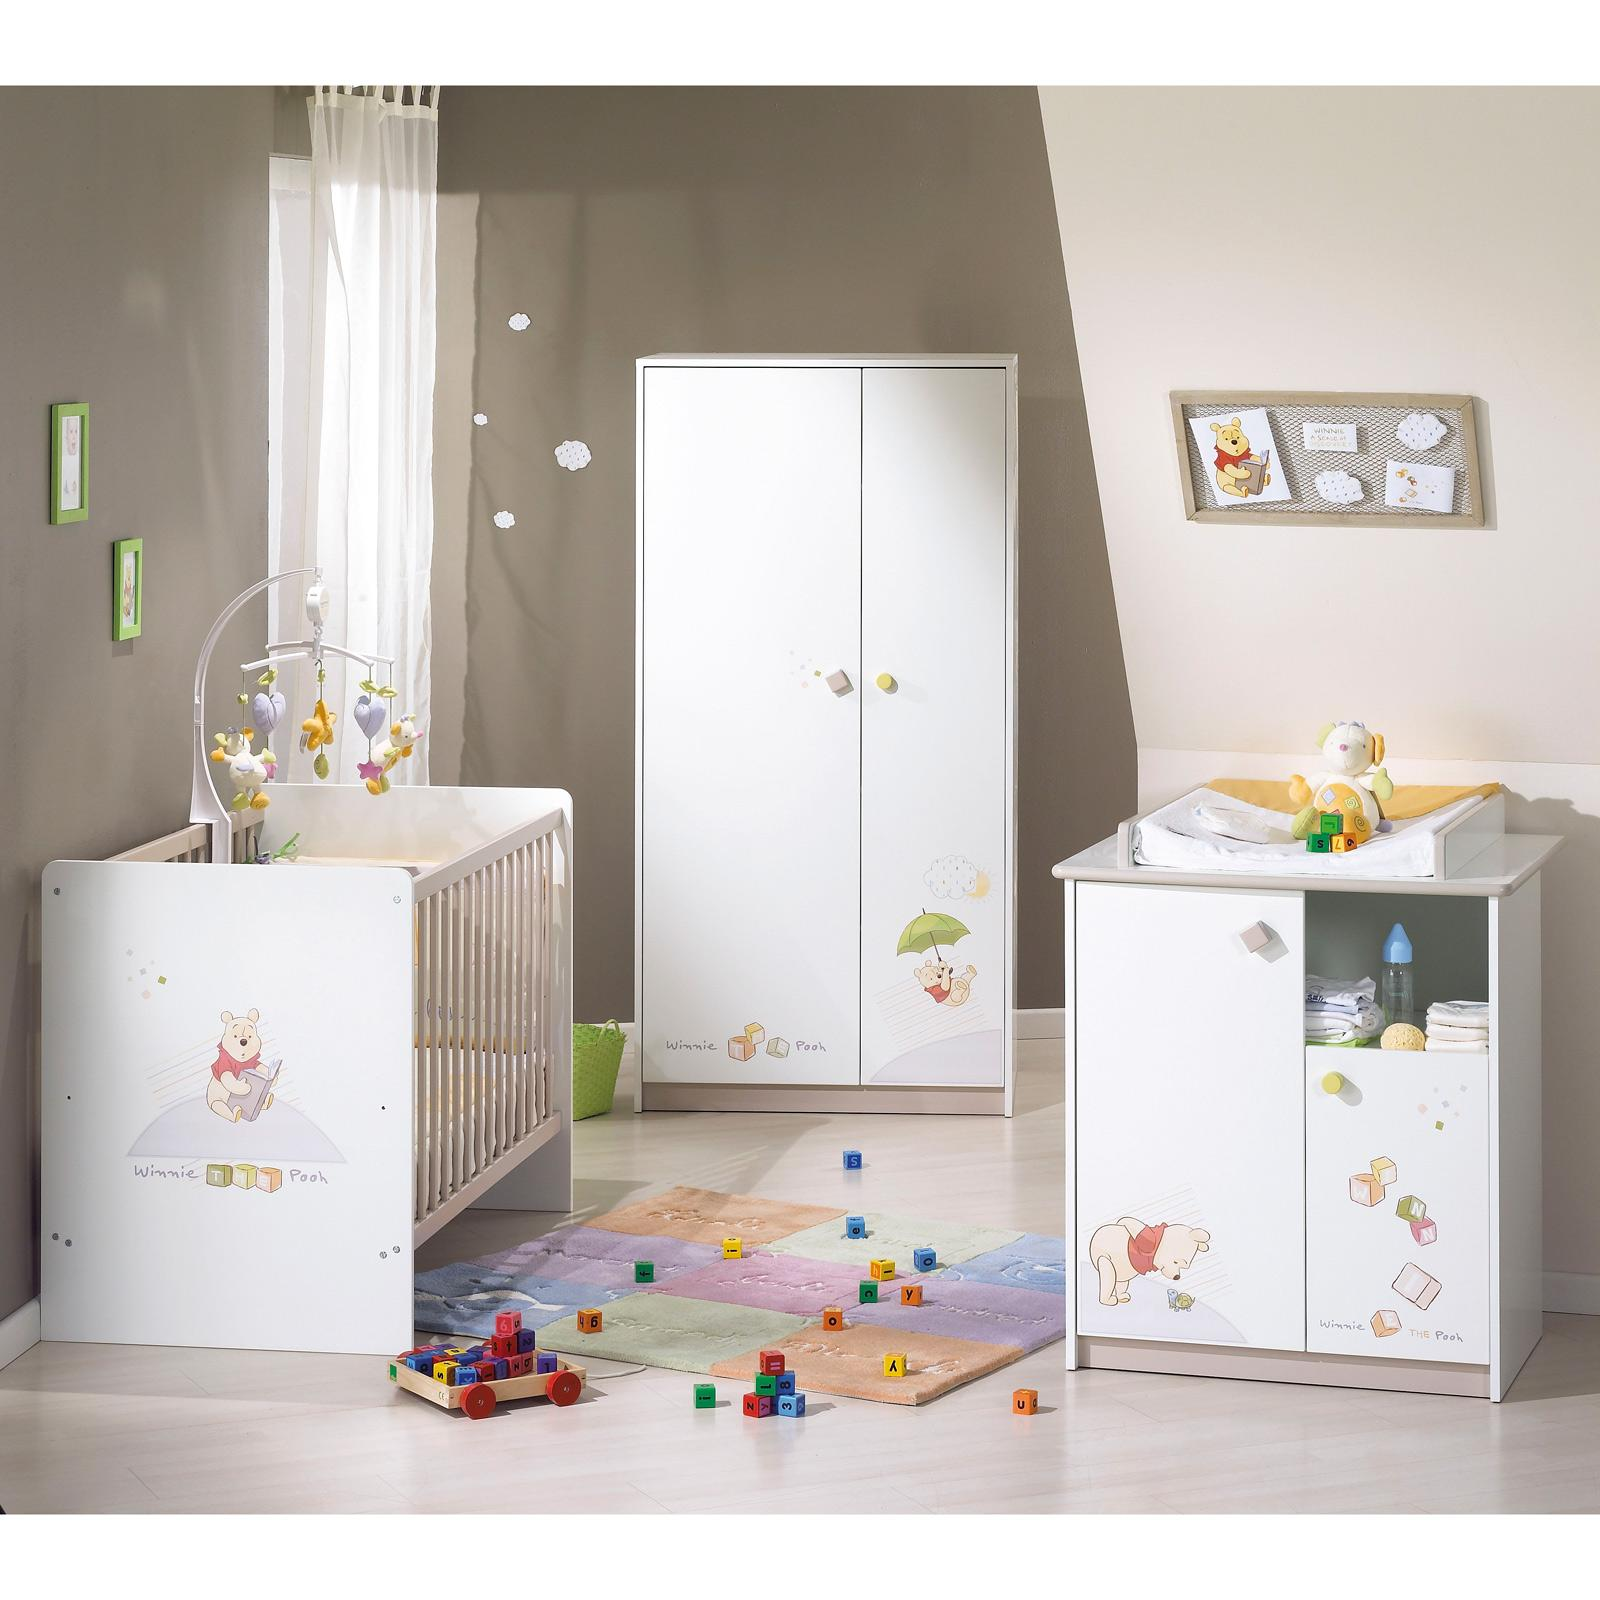 Decoration de chambre bebe winnie l ourson - Chambre winnie l ourson pour bebe ...